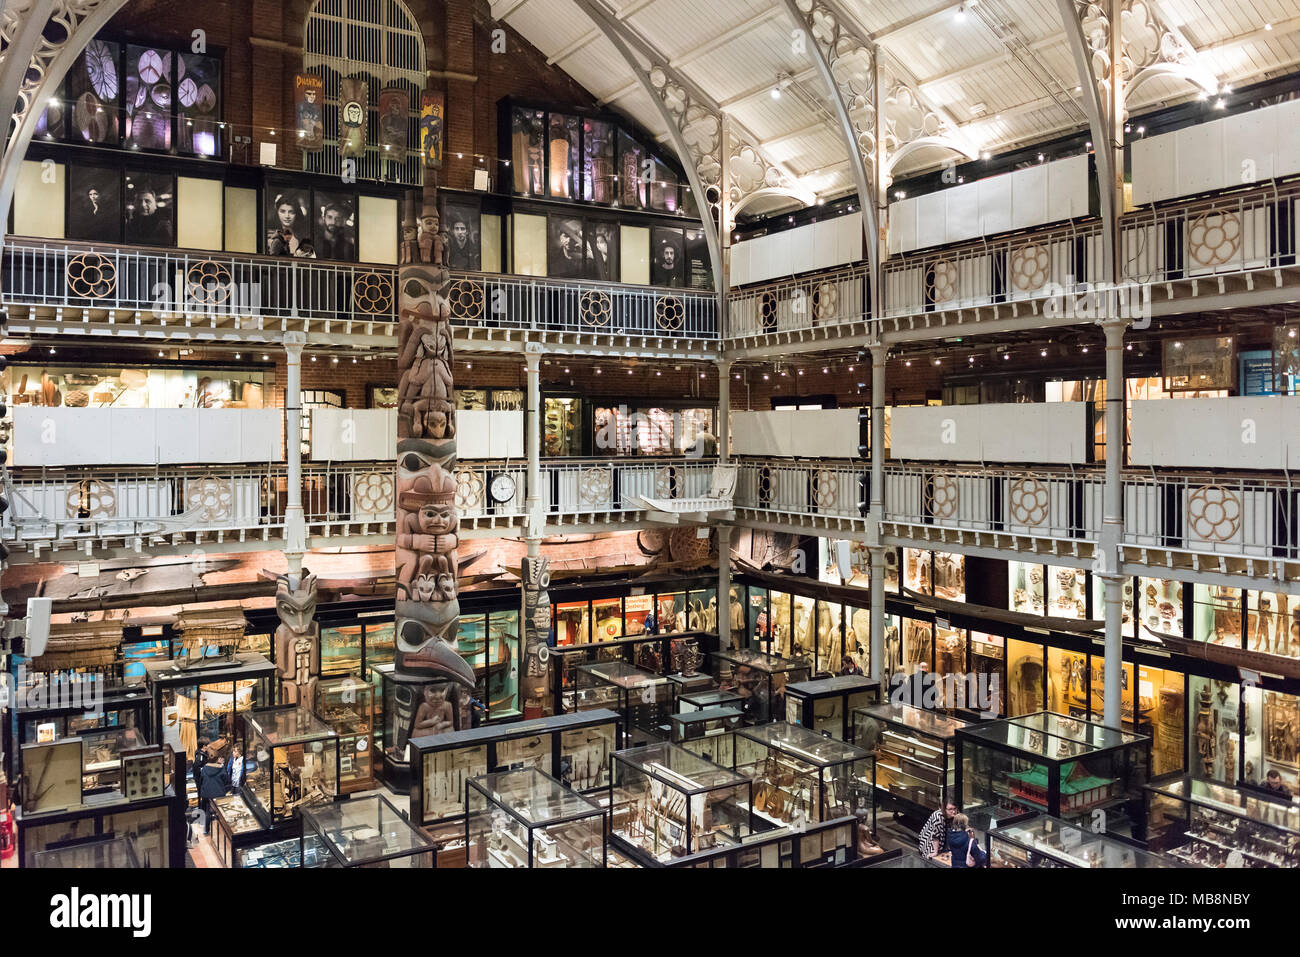 Oxford. England. Interior of the Pitt Rivers Museum, with archaeological and ethnographic objects from all over the world, founded in 1884. Centre is  - Stock Image